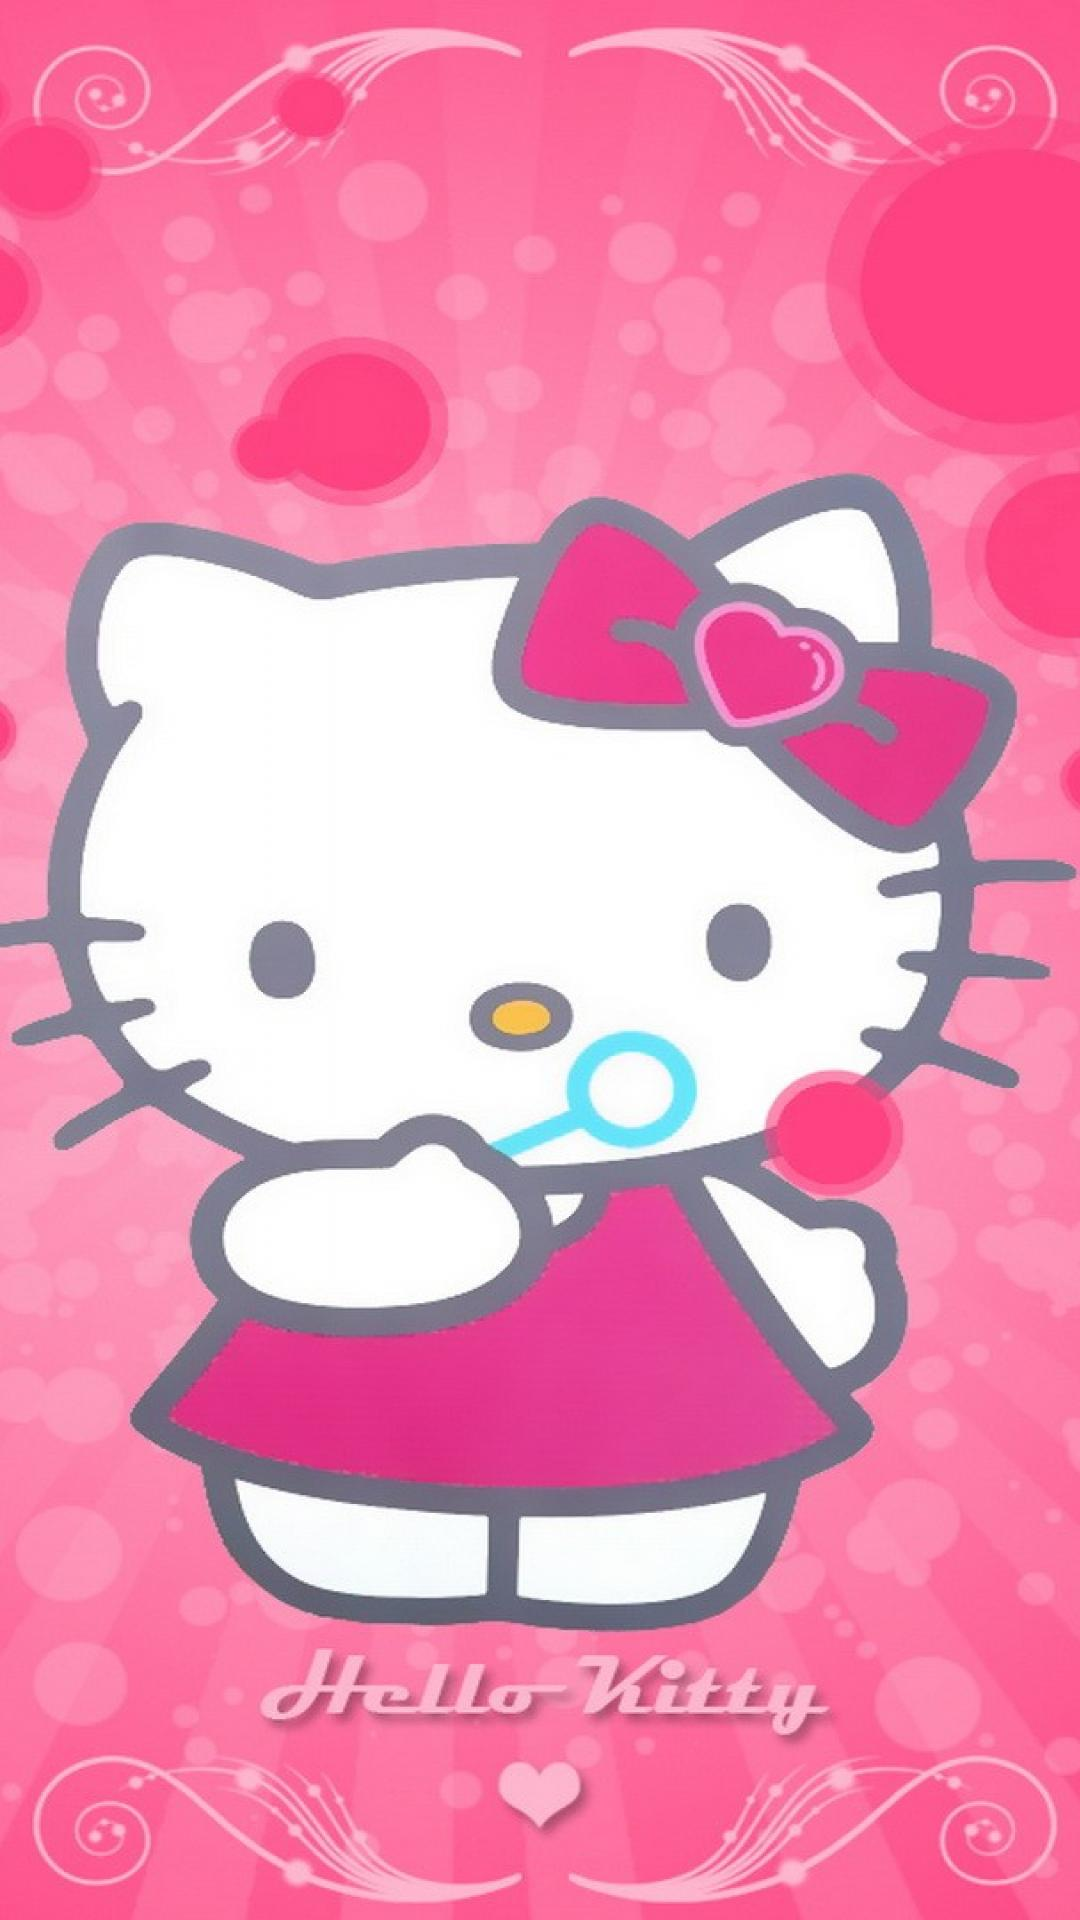 Pink hello kitty wallpaper 80590 1080x1920